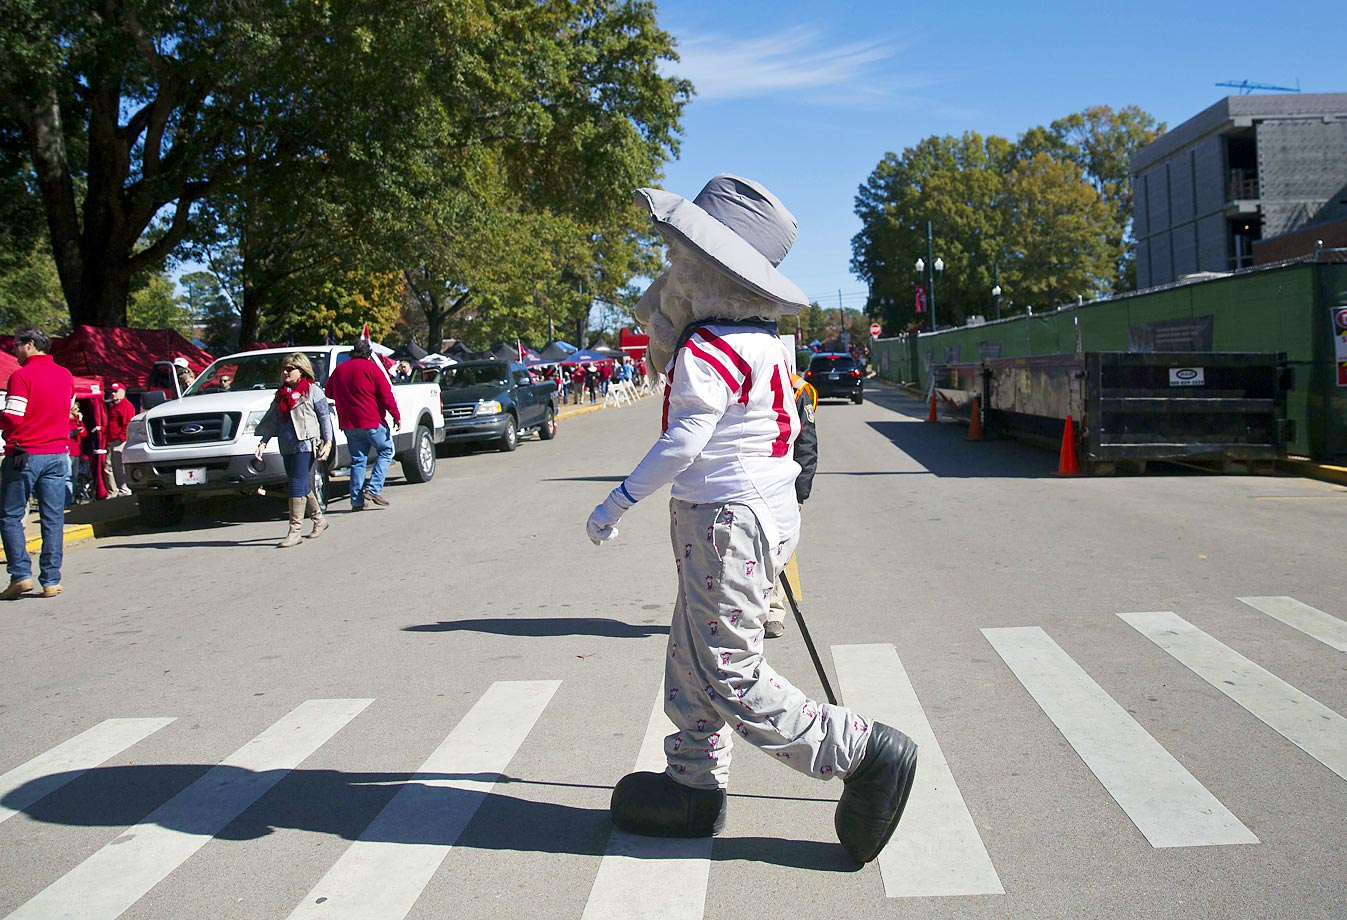 The former Mississippi mascot, Colonel Reb, walks across the road towards the Grove for tailgating before the game against Auburn.